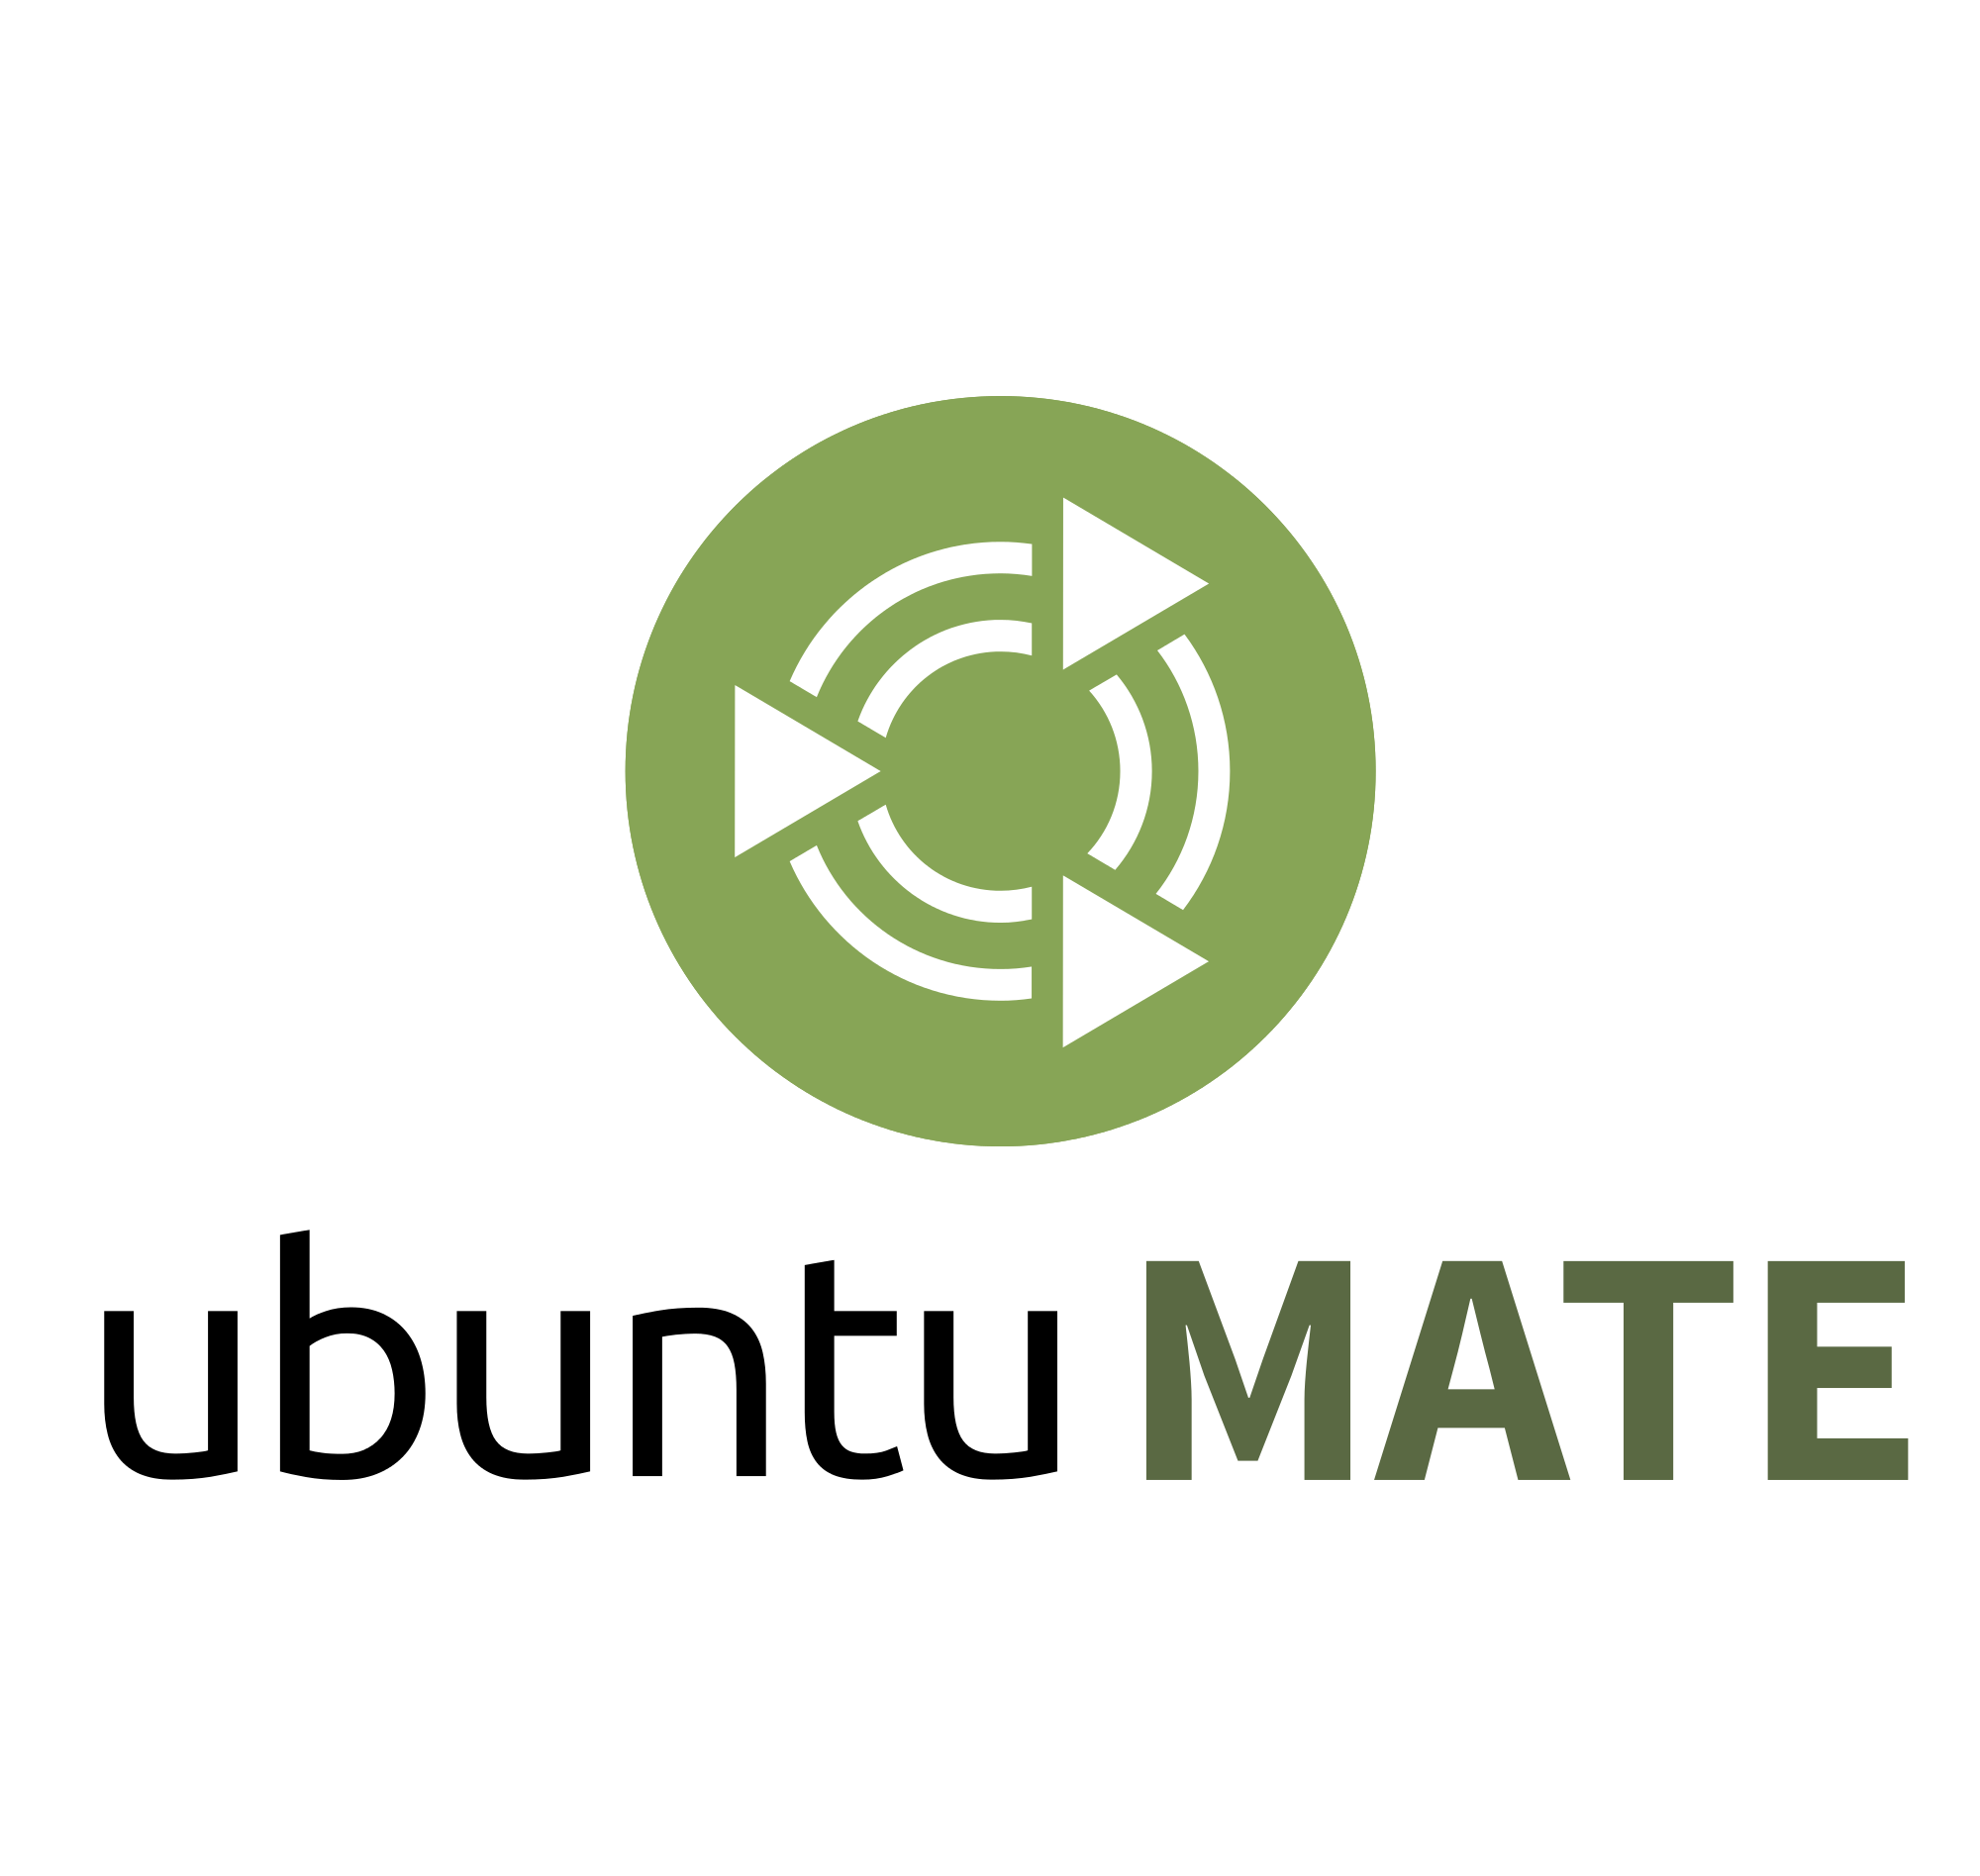 Download ubuntu mate 16.04 raspberry pi 3